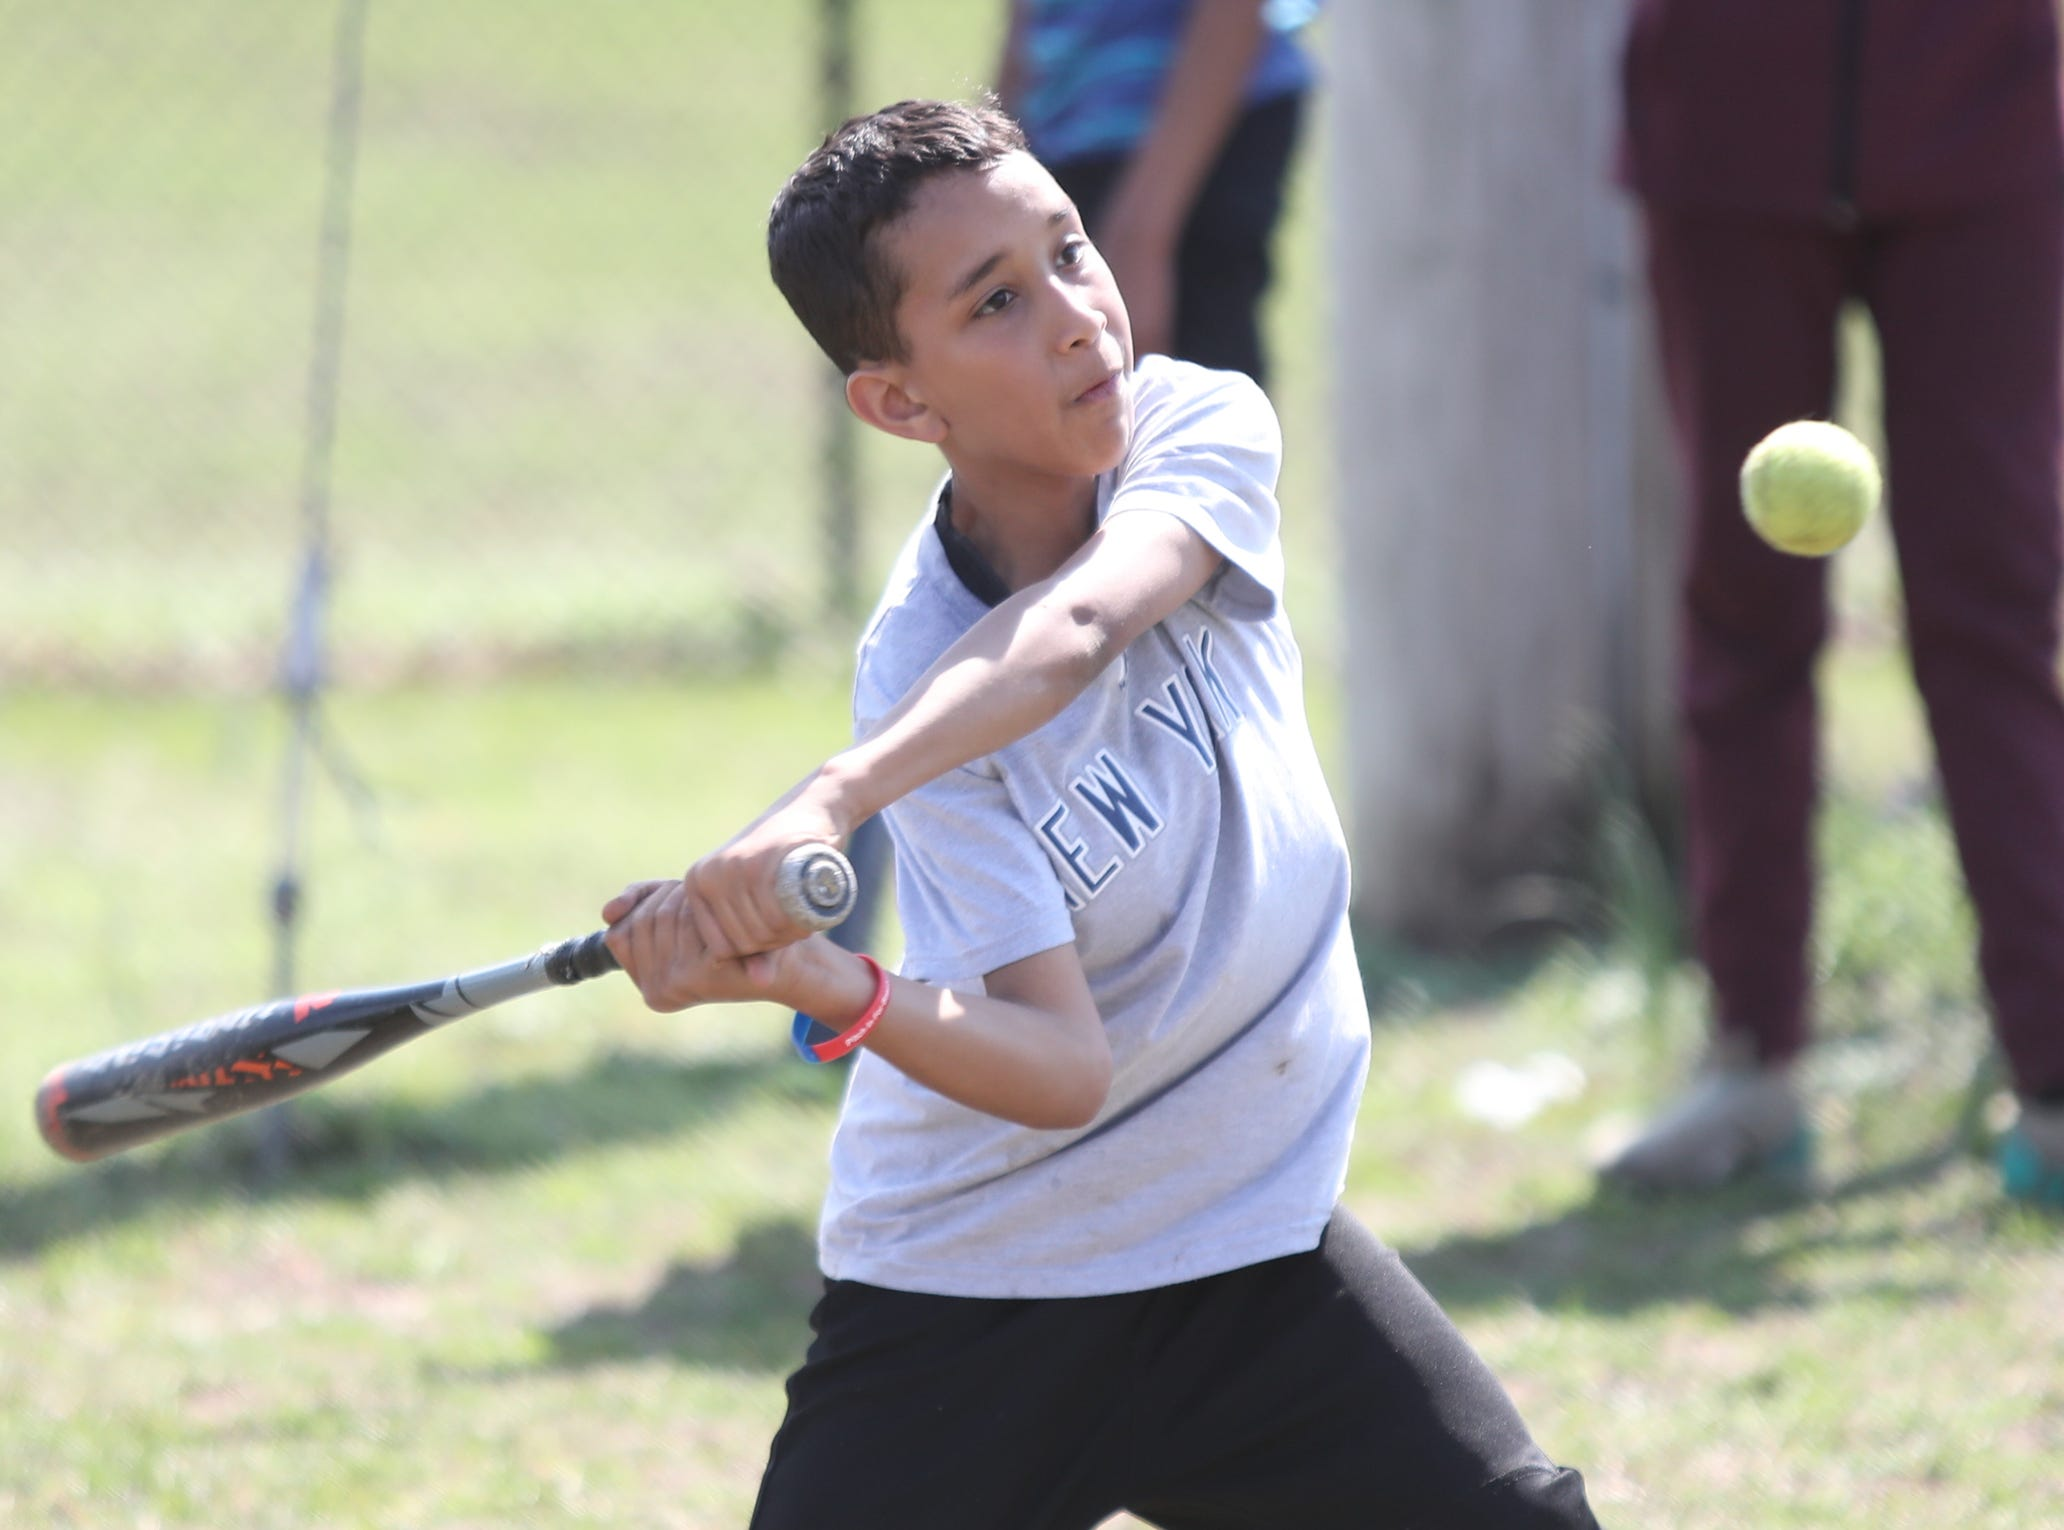 Joan Pau, 11, takes a swing at a pitch during little league practice at Brush Park on Saturday, April 13, 2019 during Jackie Robinson Day in Mount Vernon.